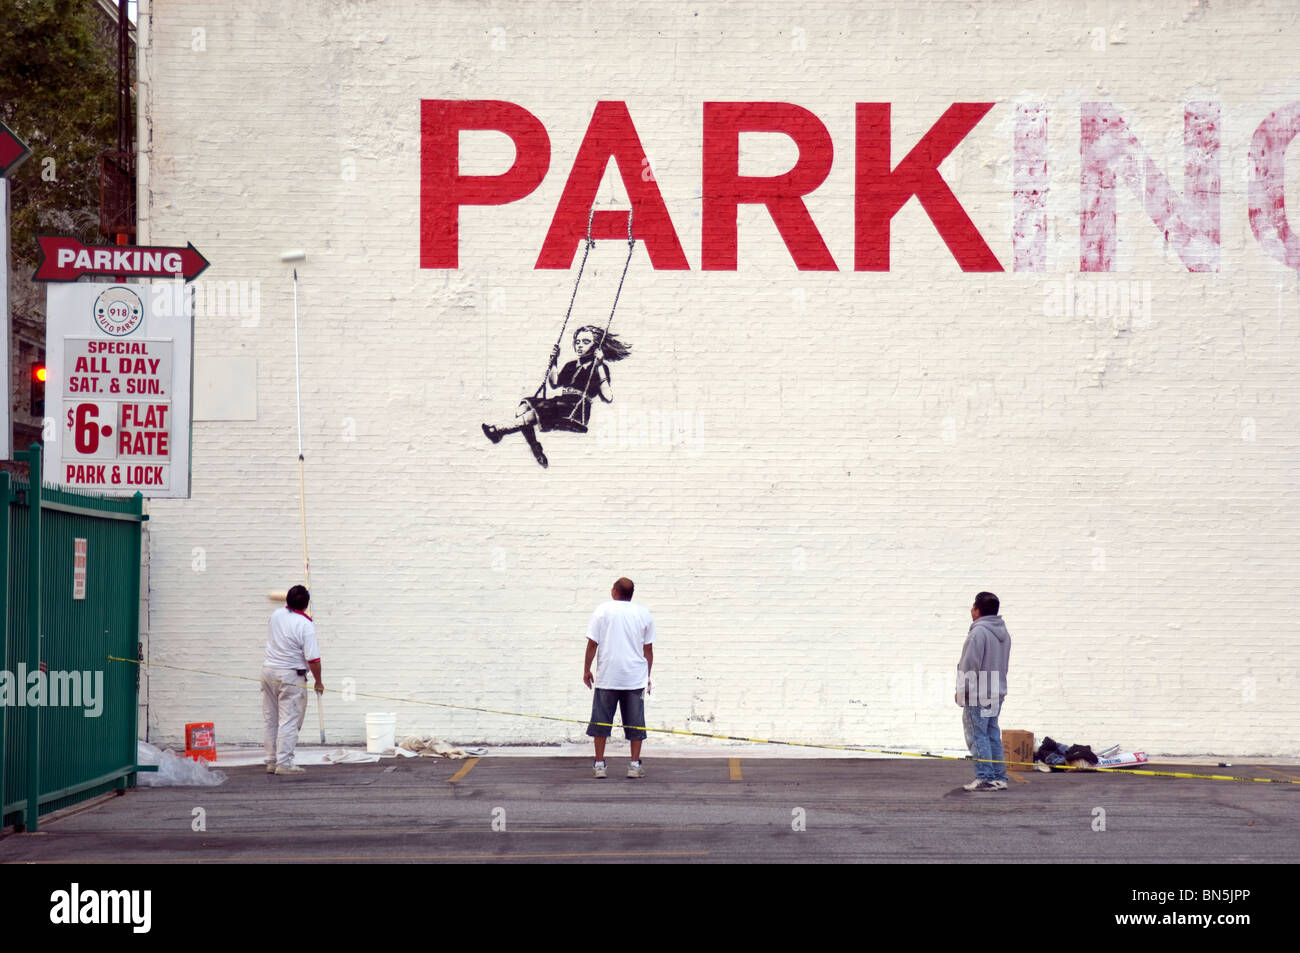 banksy artwork los angeles